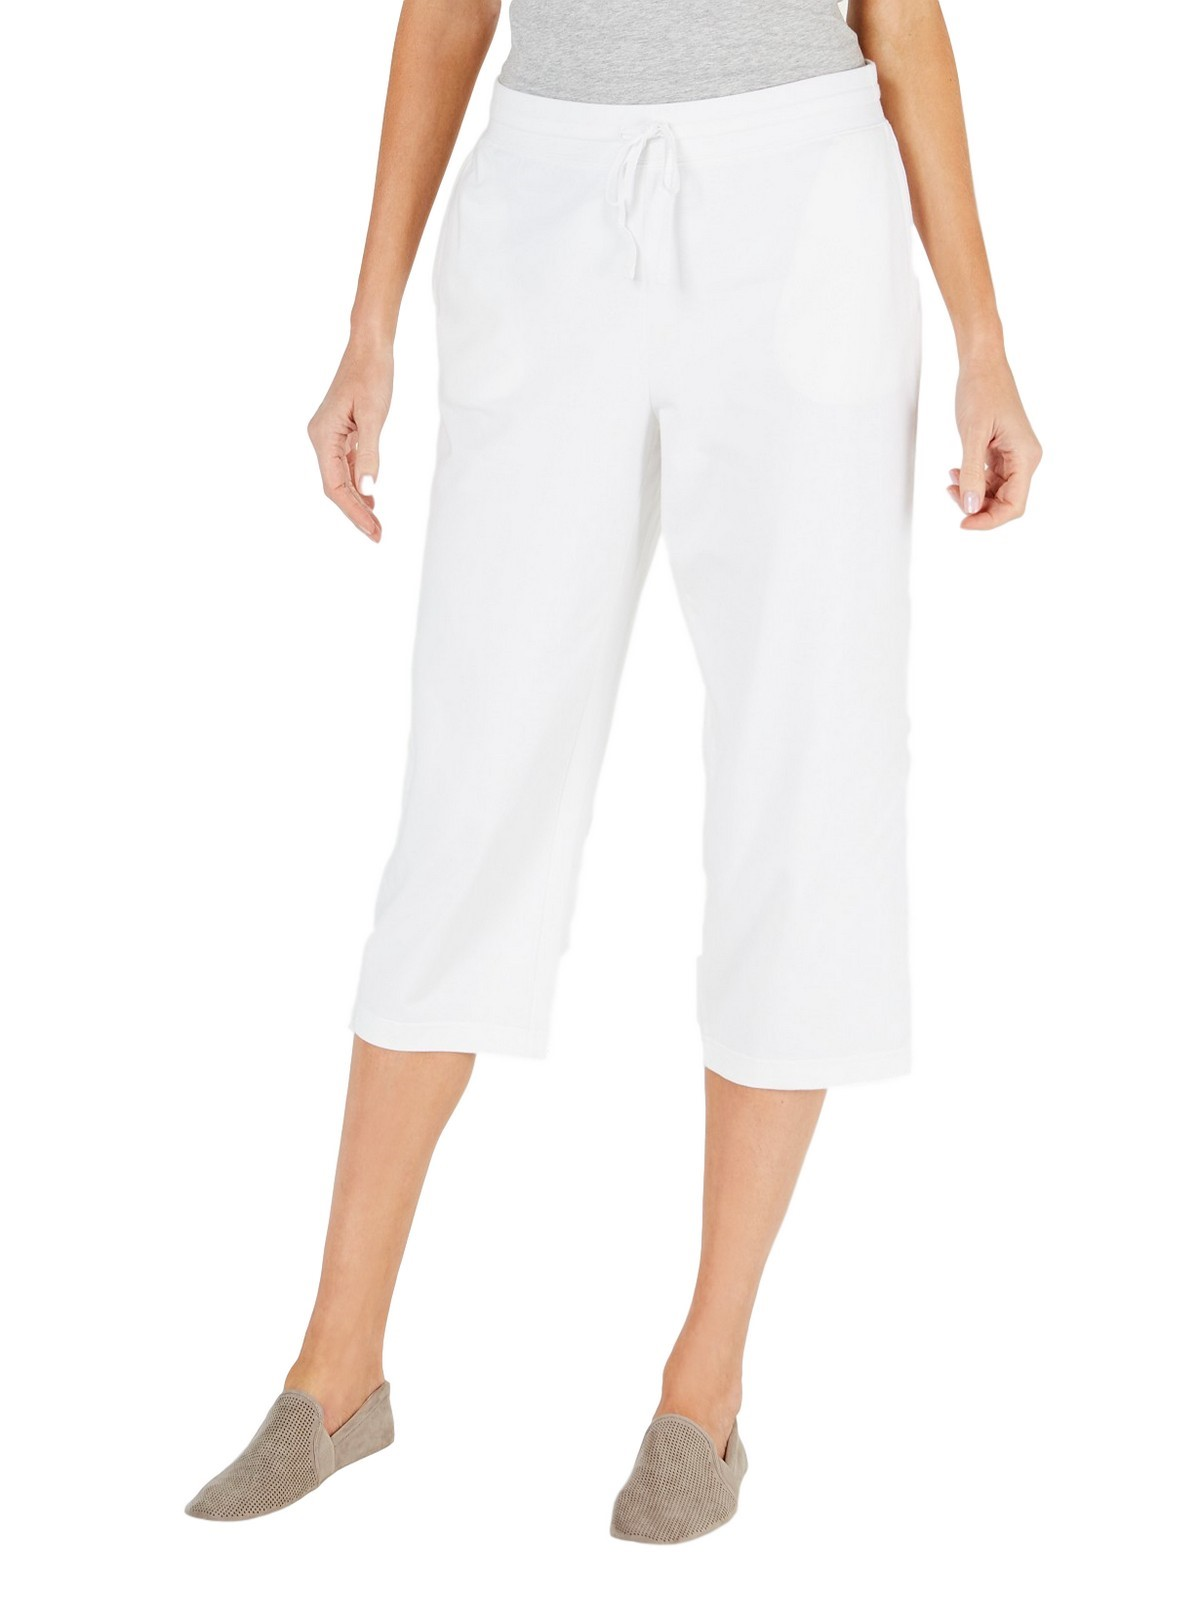 Casual Pleated Bermuda Shorts in White